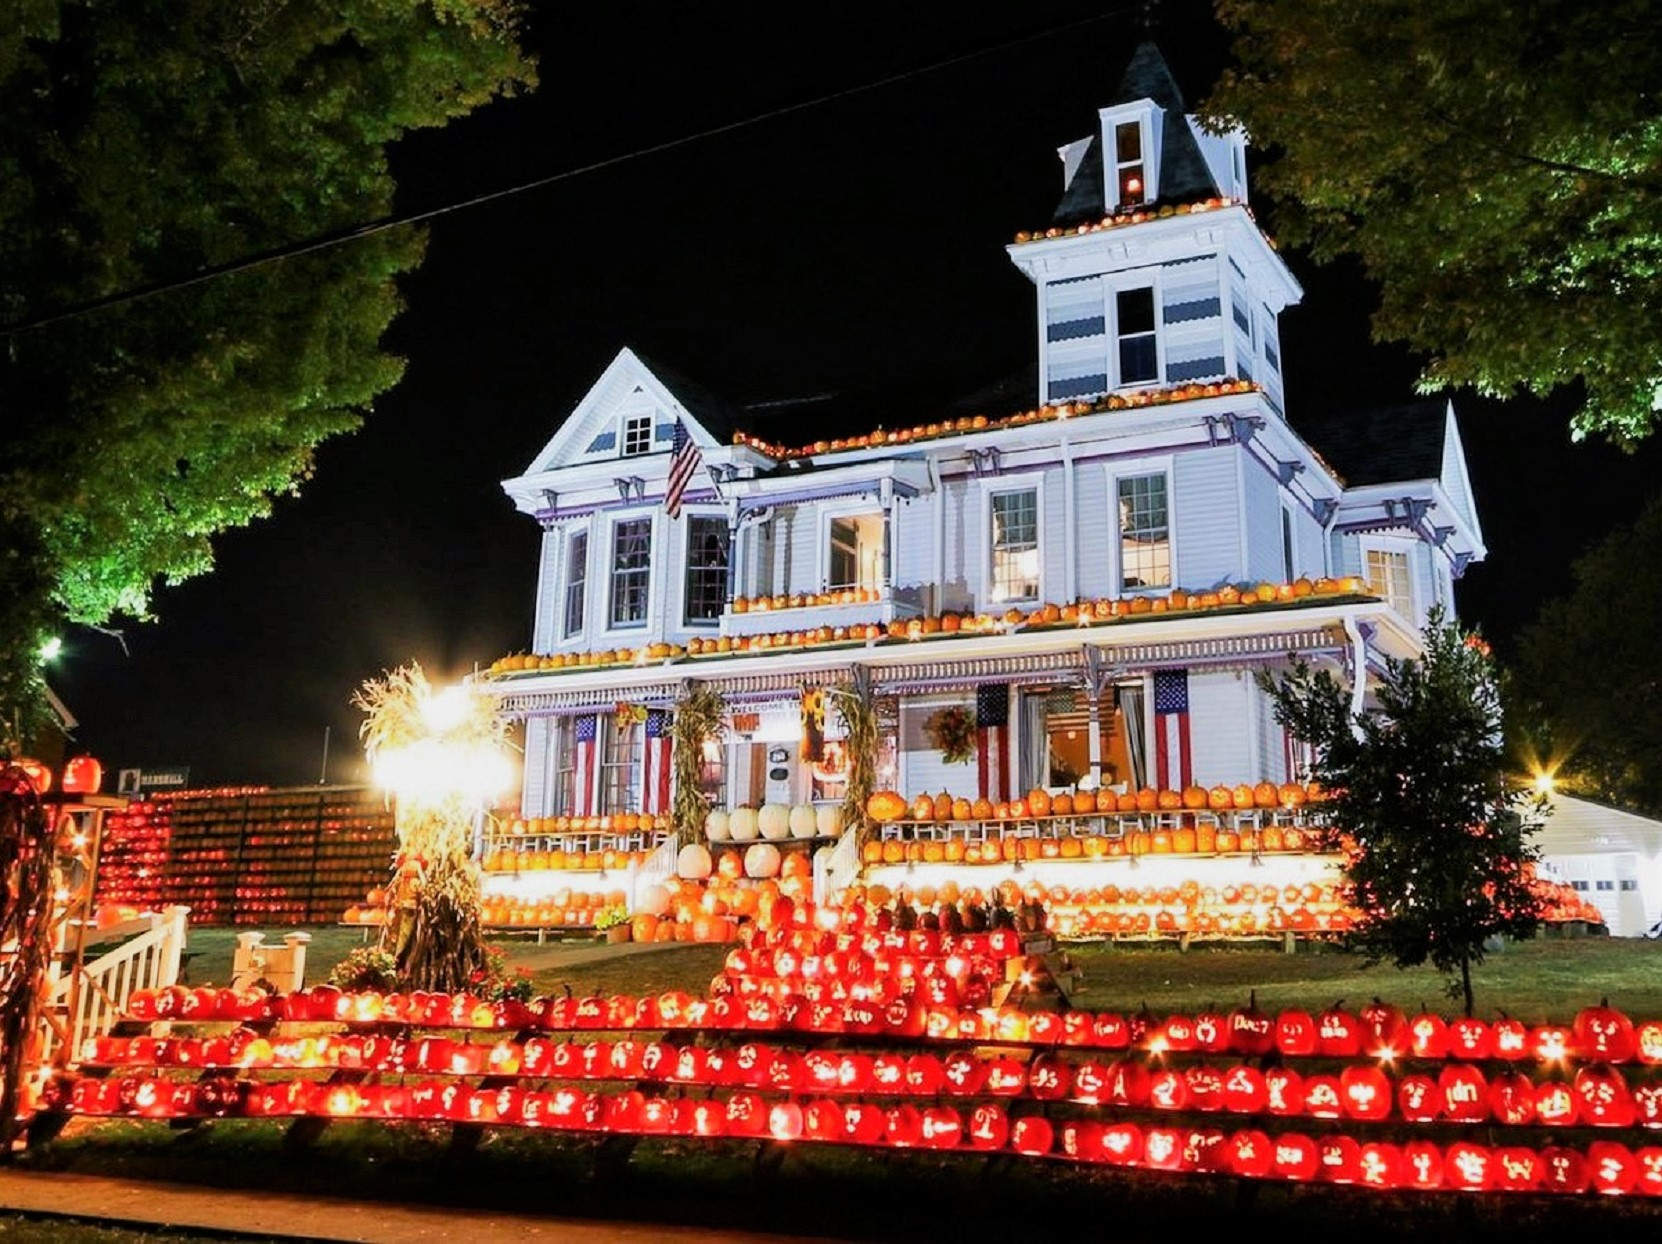 This West Virginia Home Has 3,000 Pumpkins On Display Every Halloween